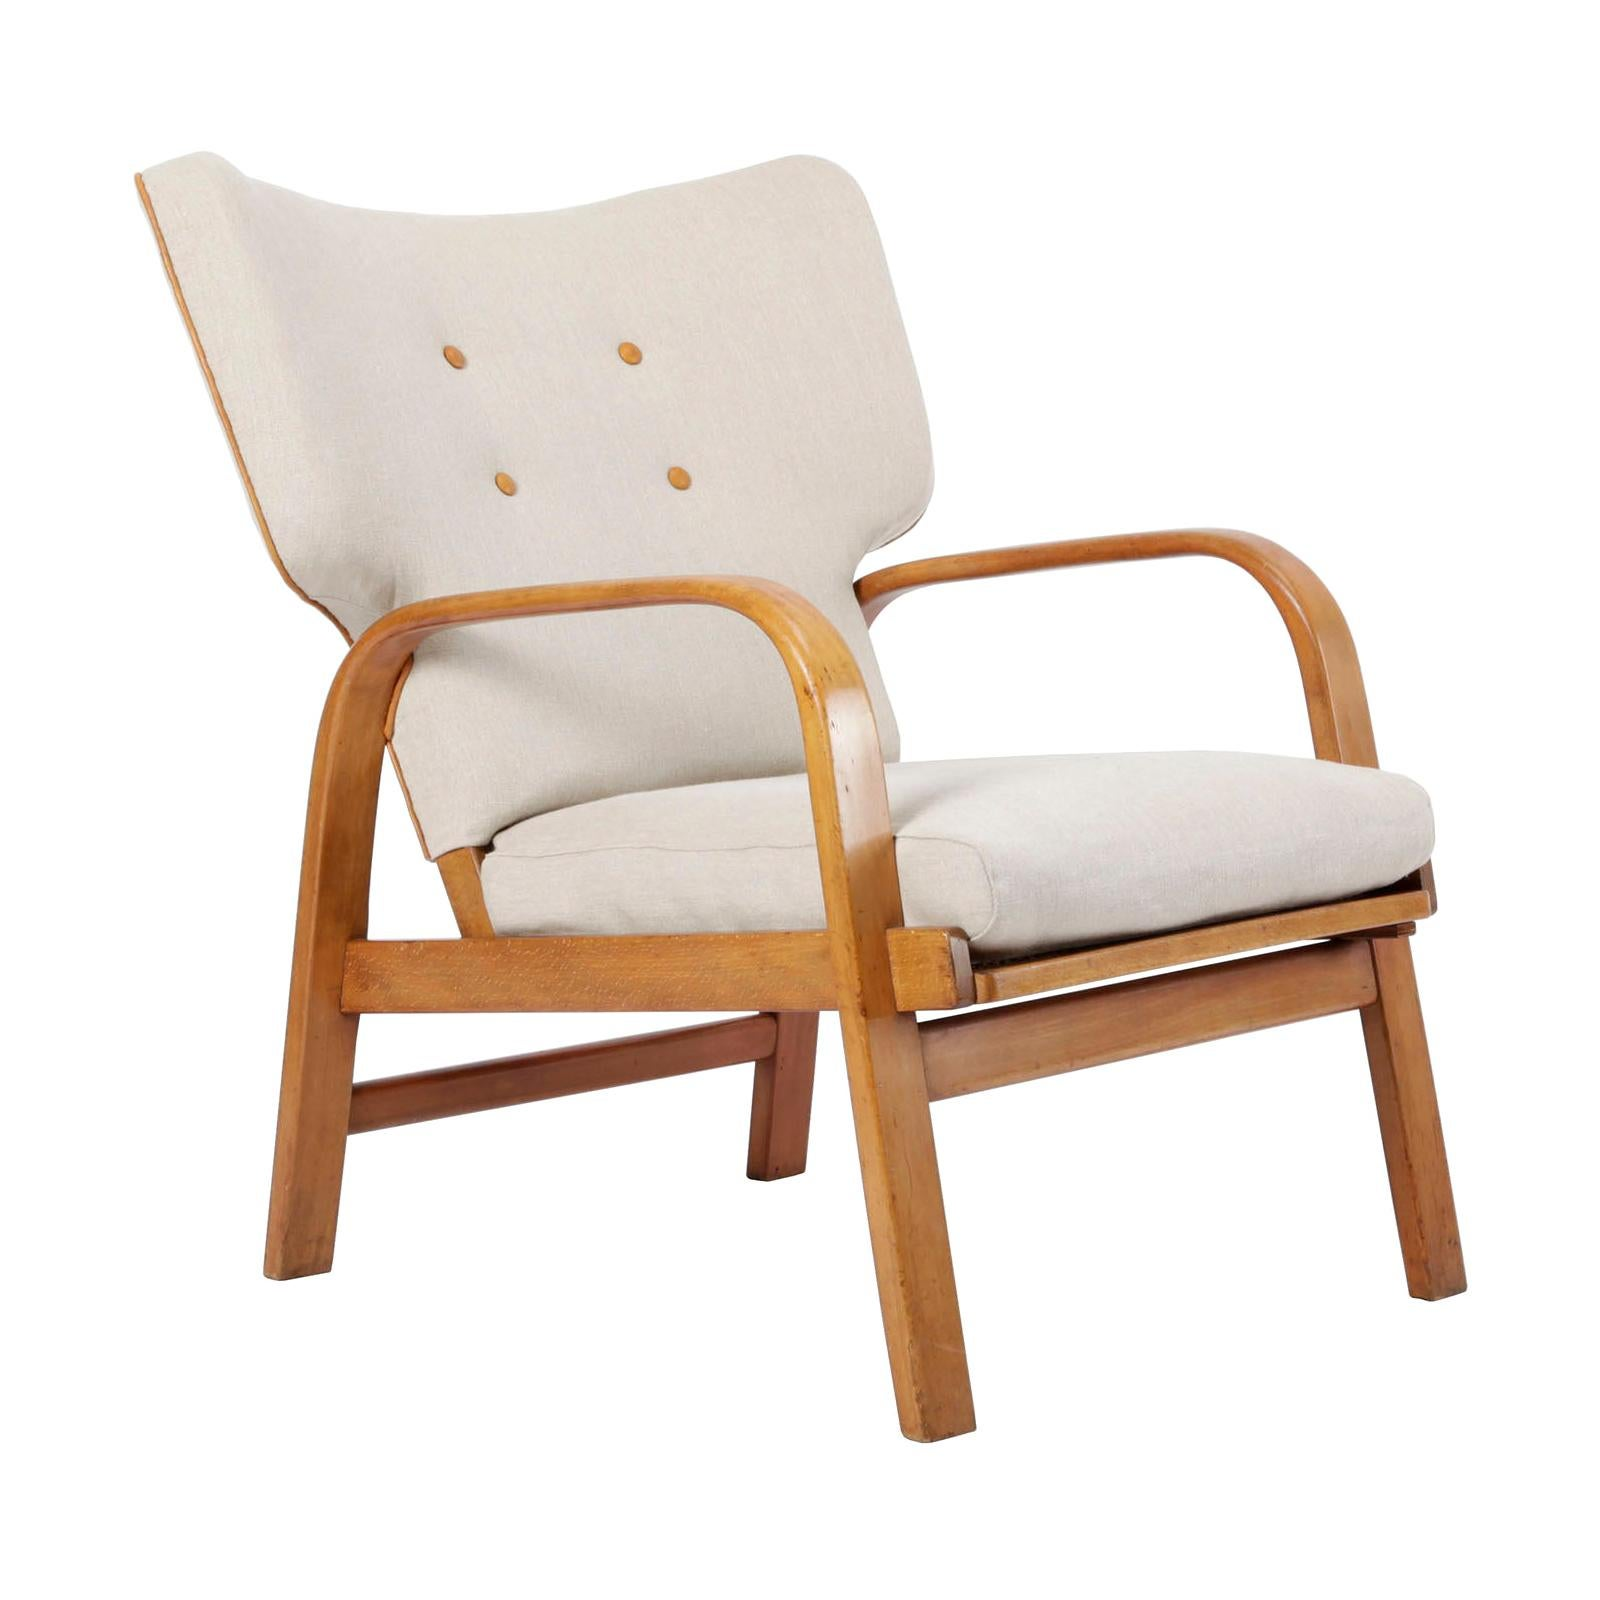 Easy Chairs Designed by Magnus Stephensen in 1932